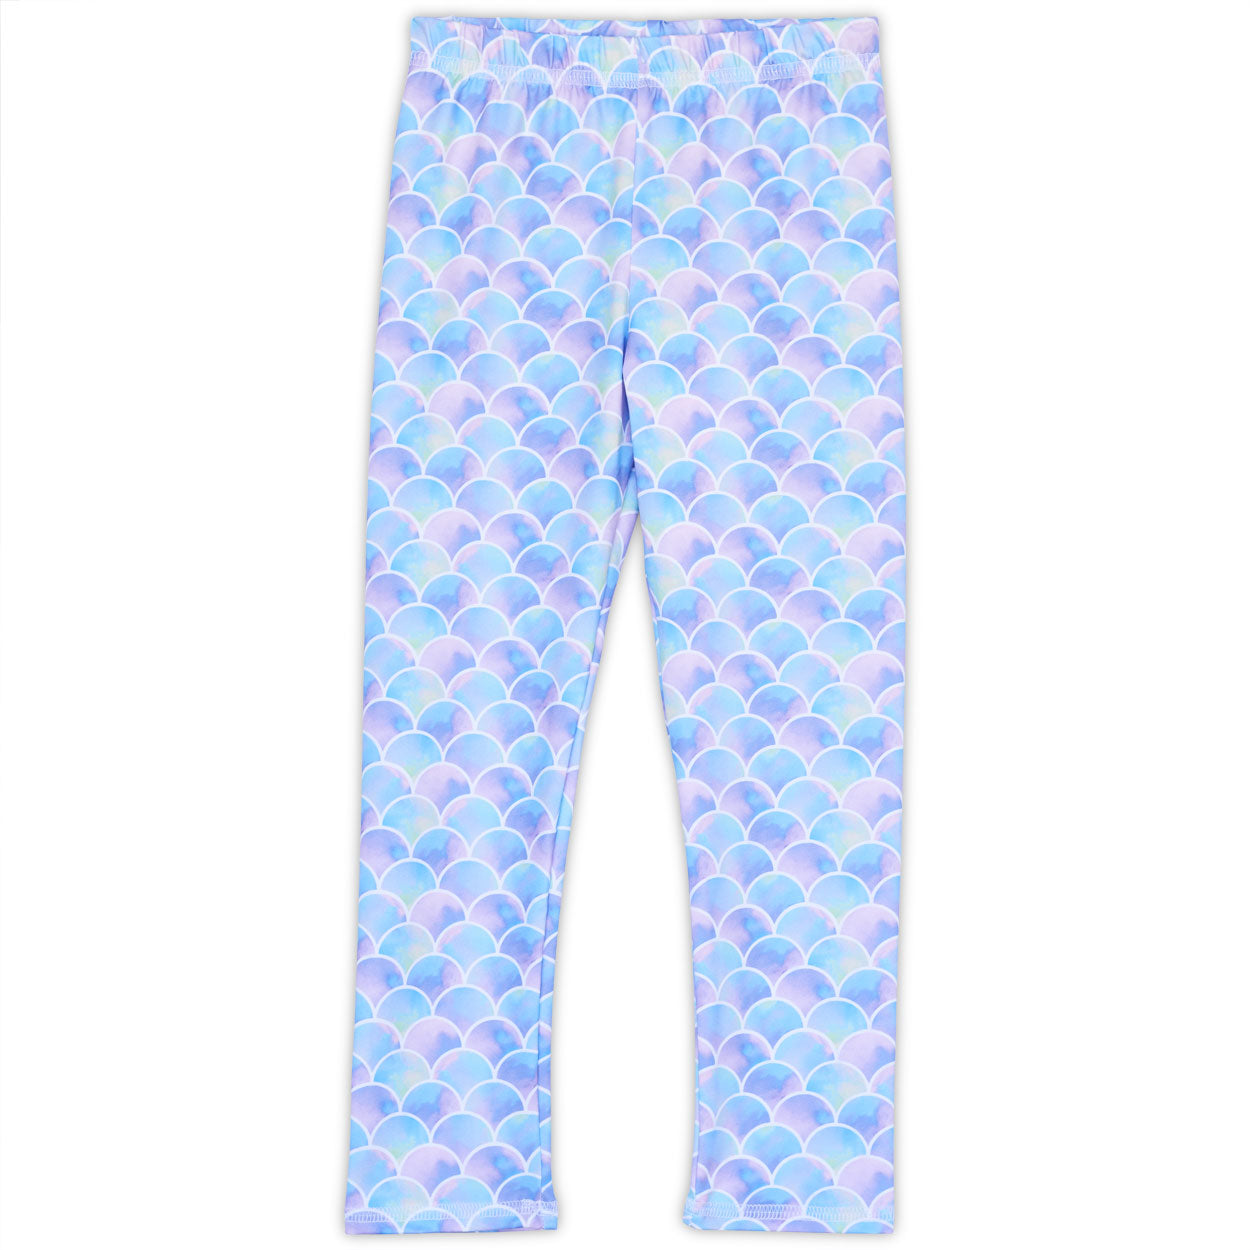 Scalie Girlie Hybrid Kids Leggings UPF 50+